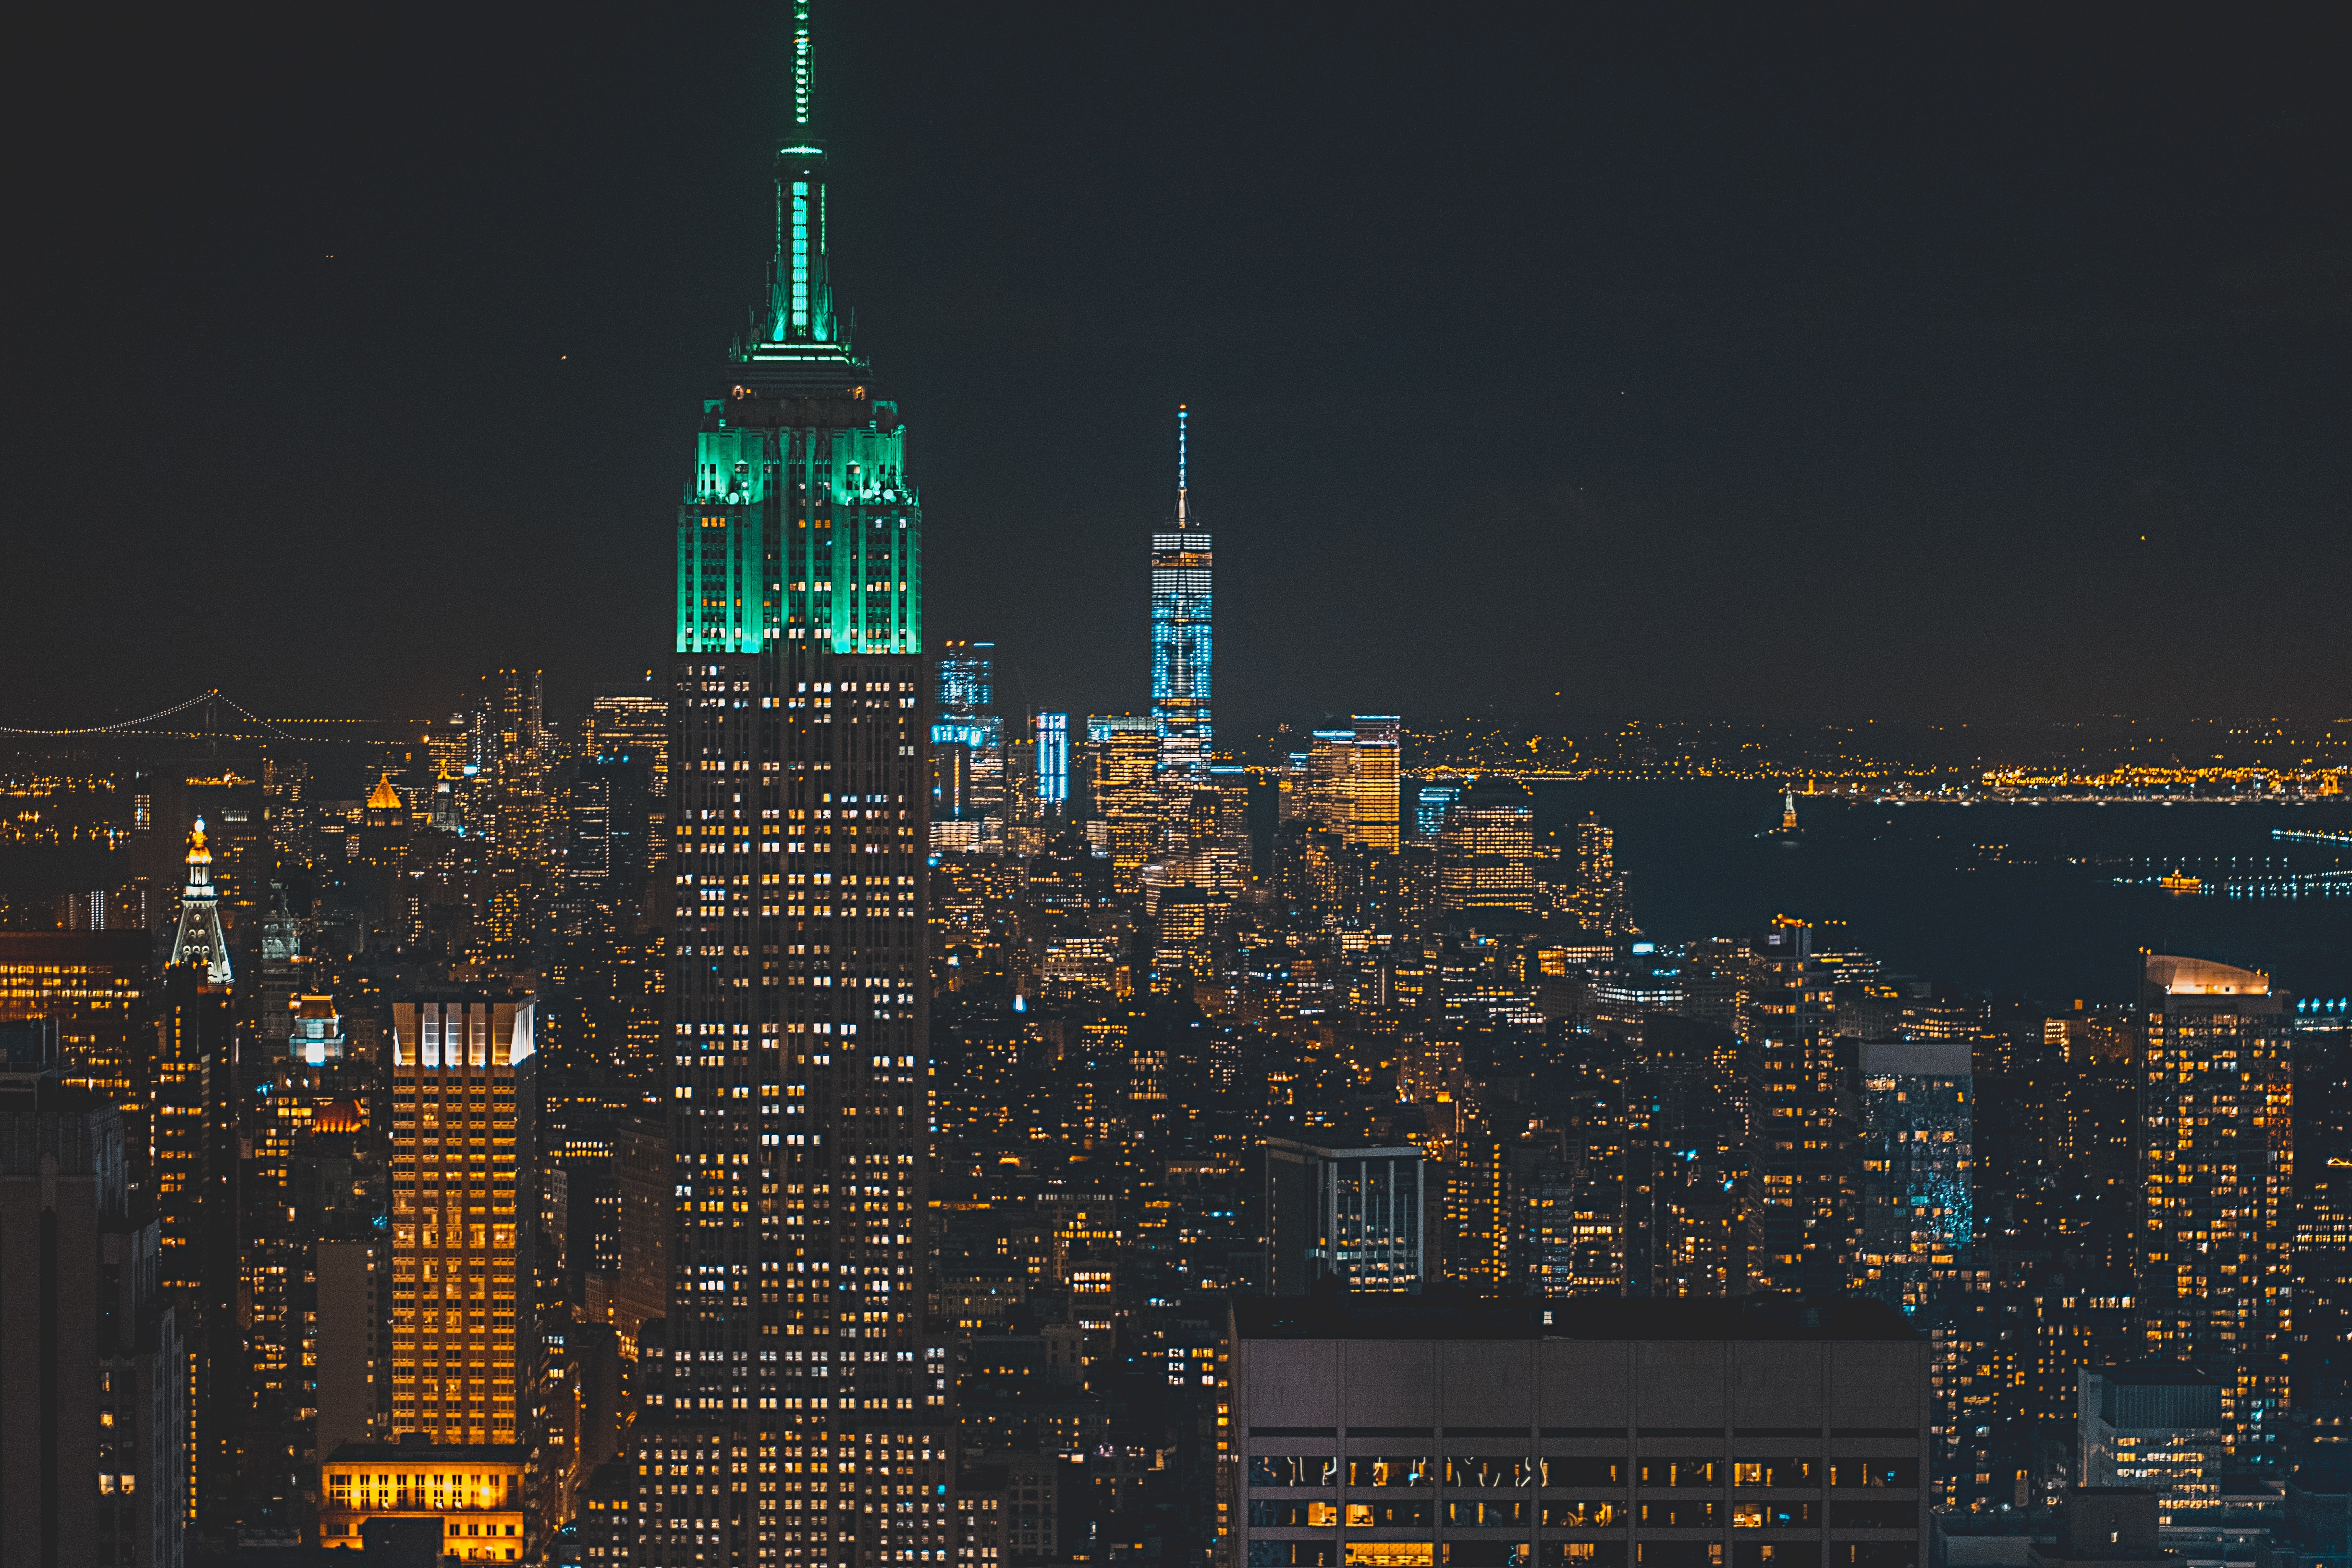 Empire State Building during nighttime